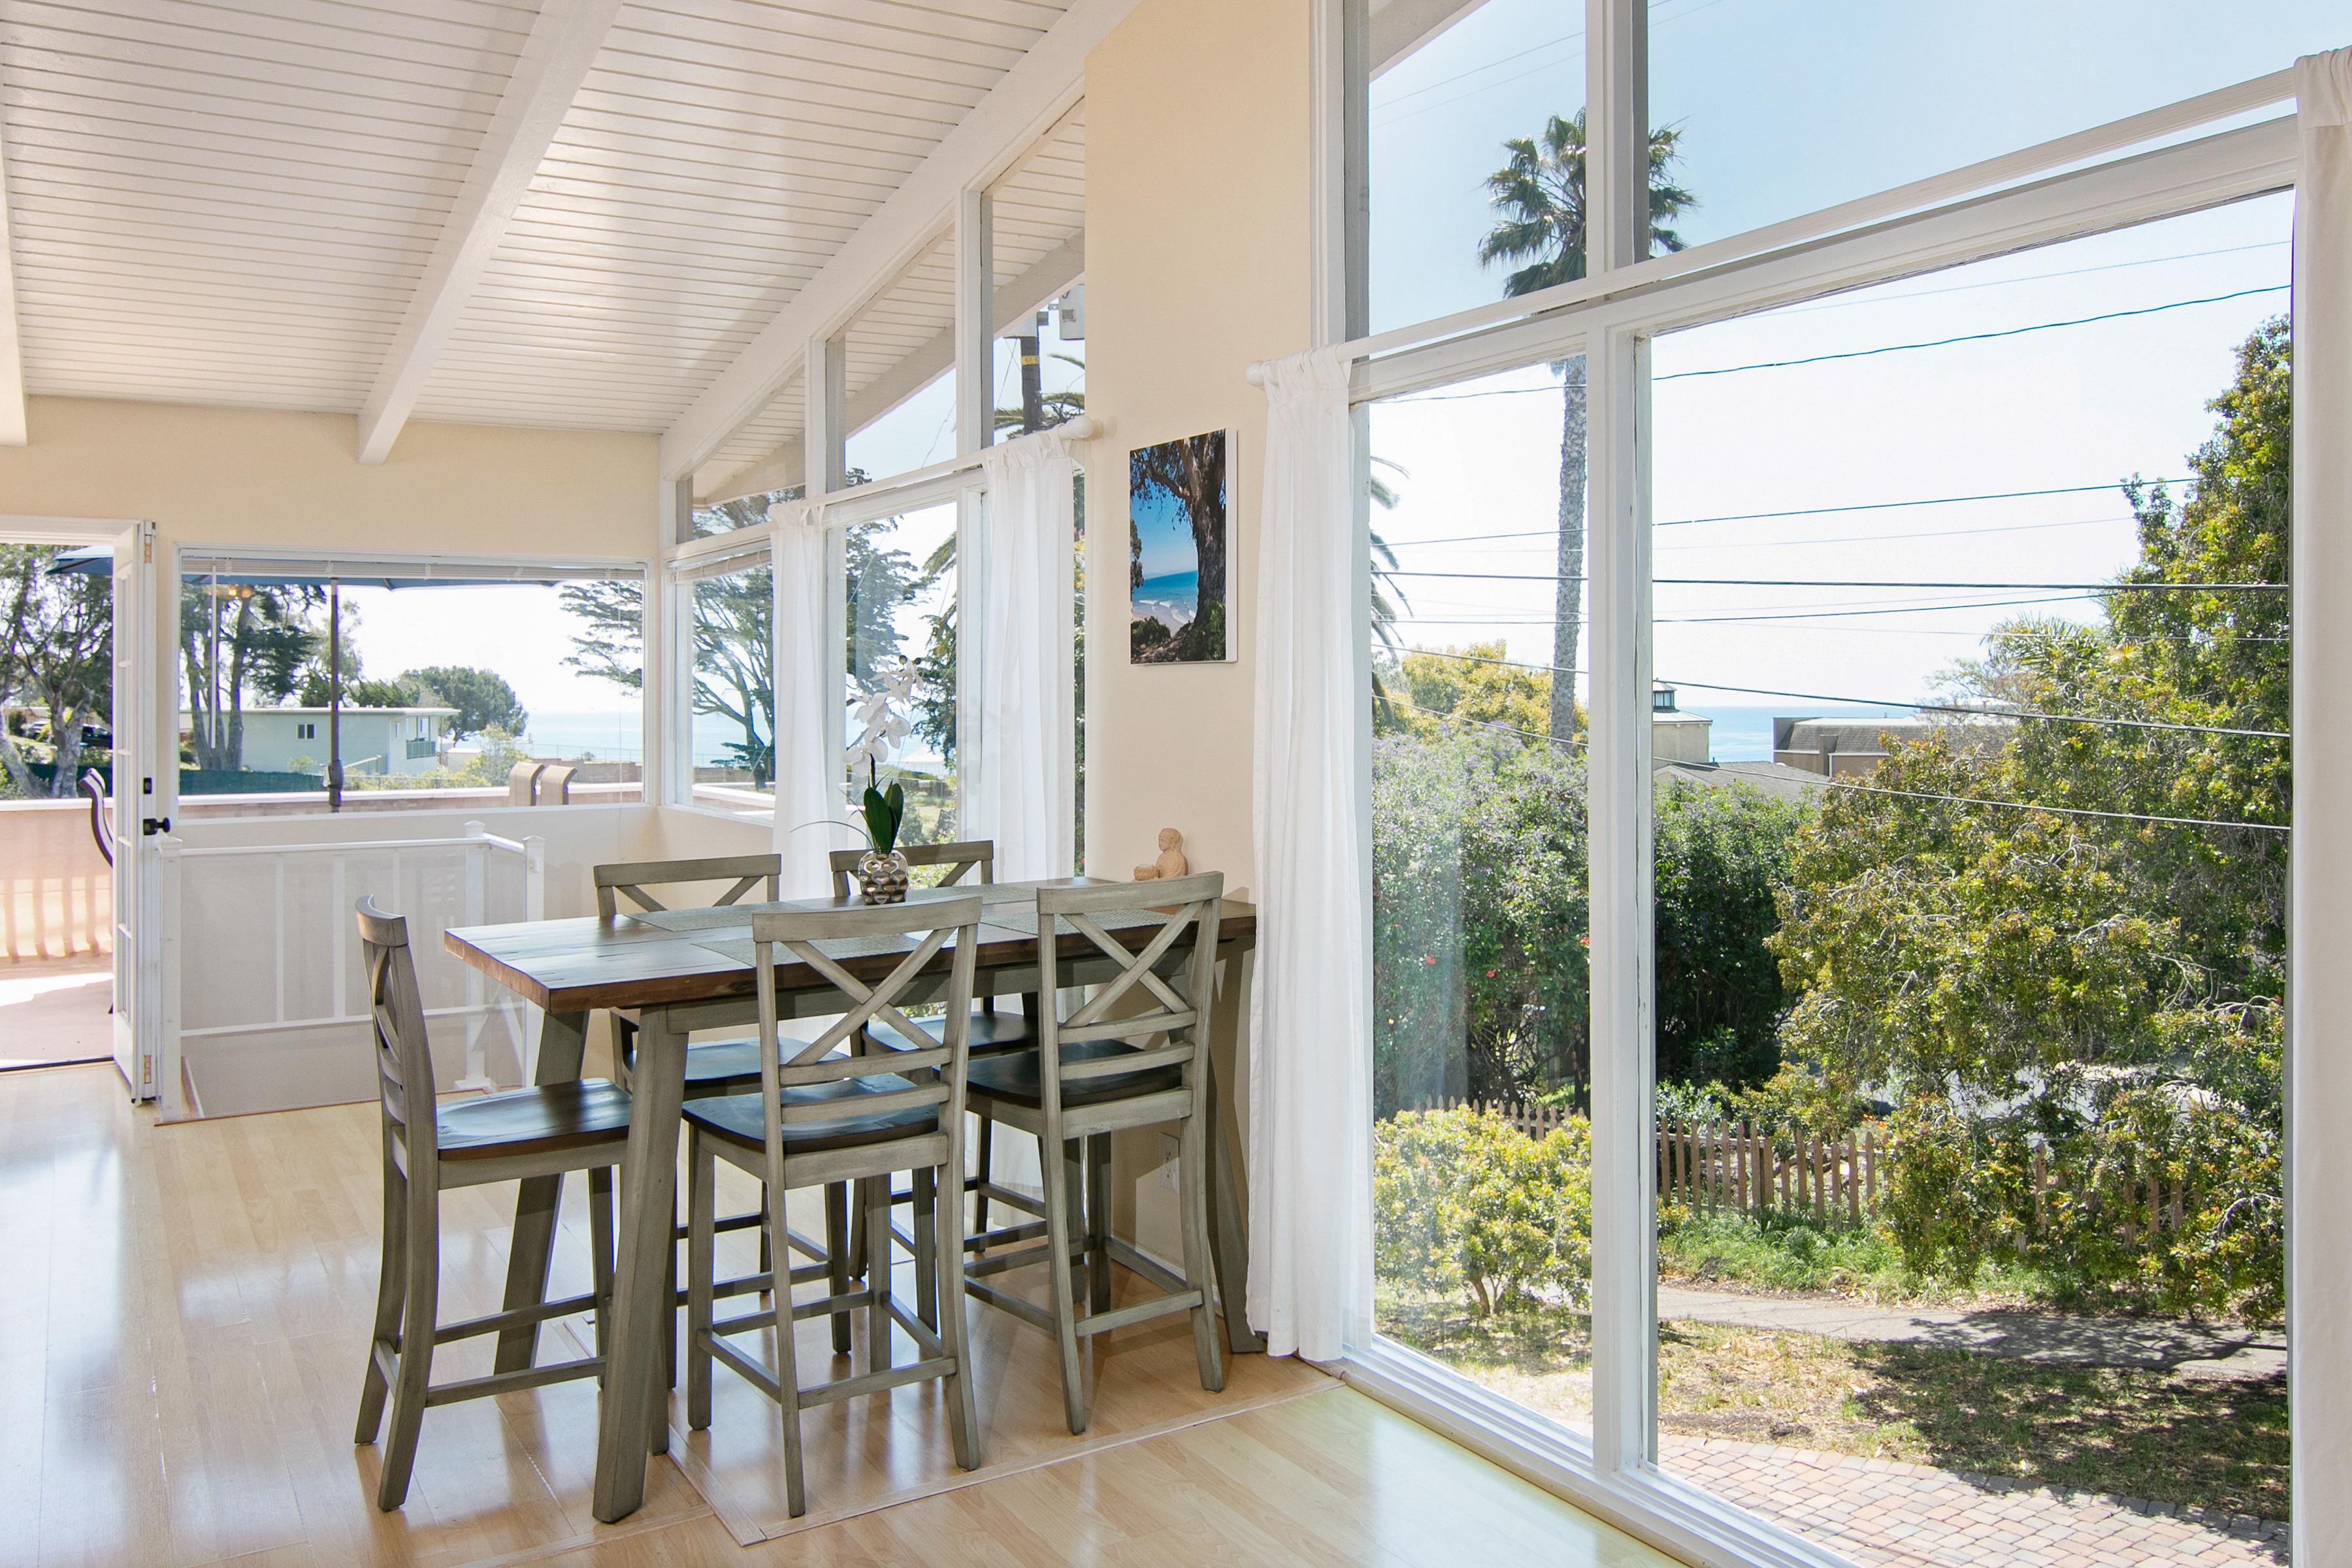 Take in ocean views from the 6-person dining area.